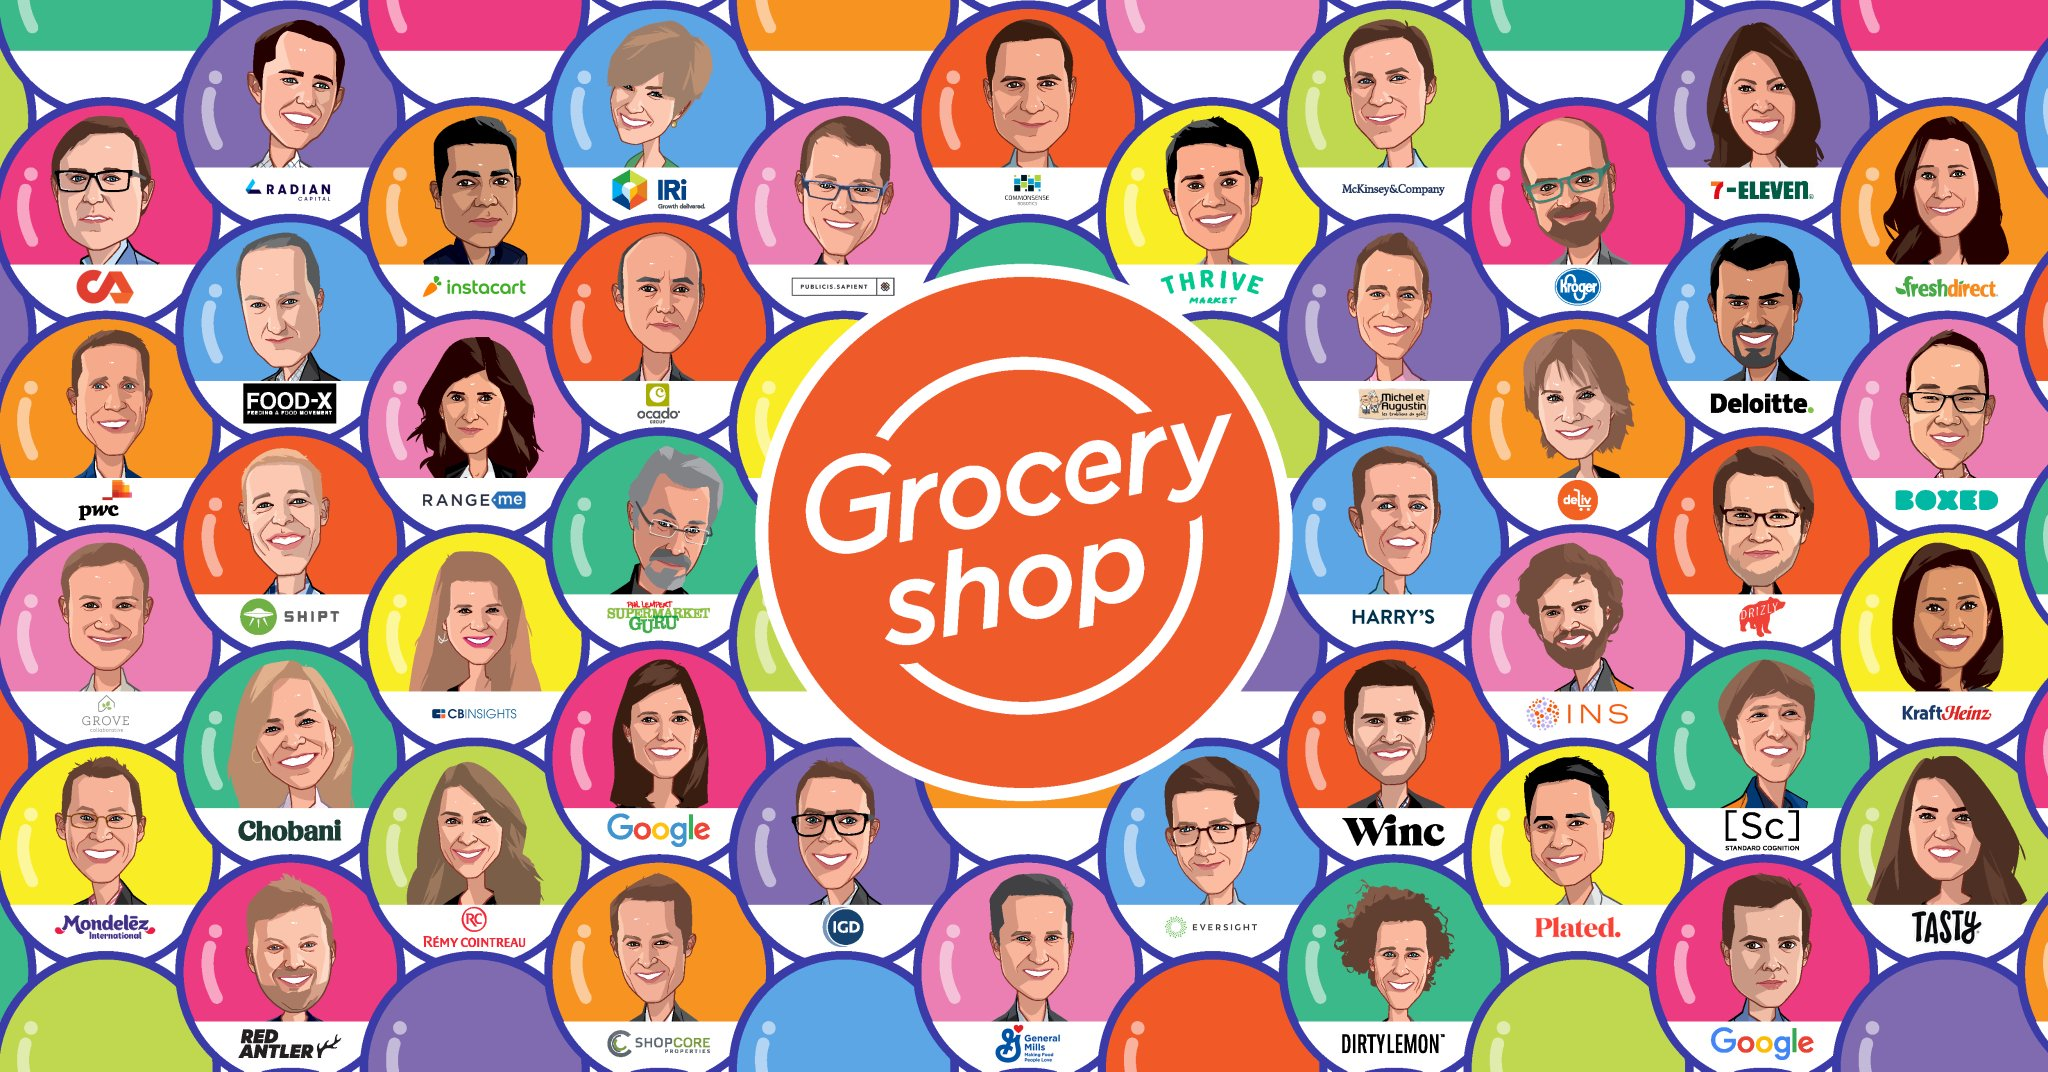 Rachel Elias Wein speaking at GroceryShop 2018